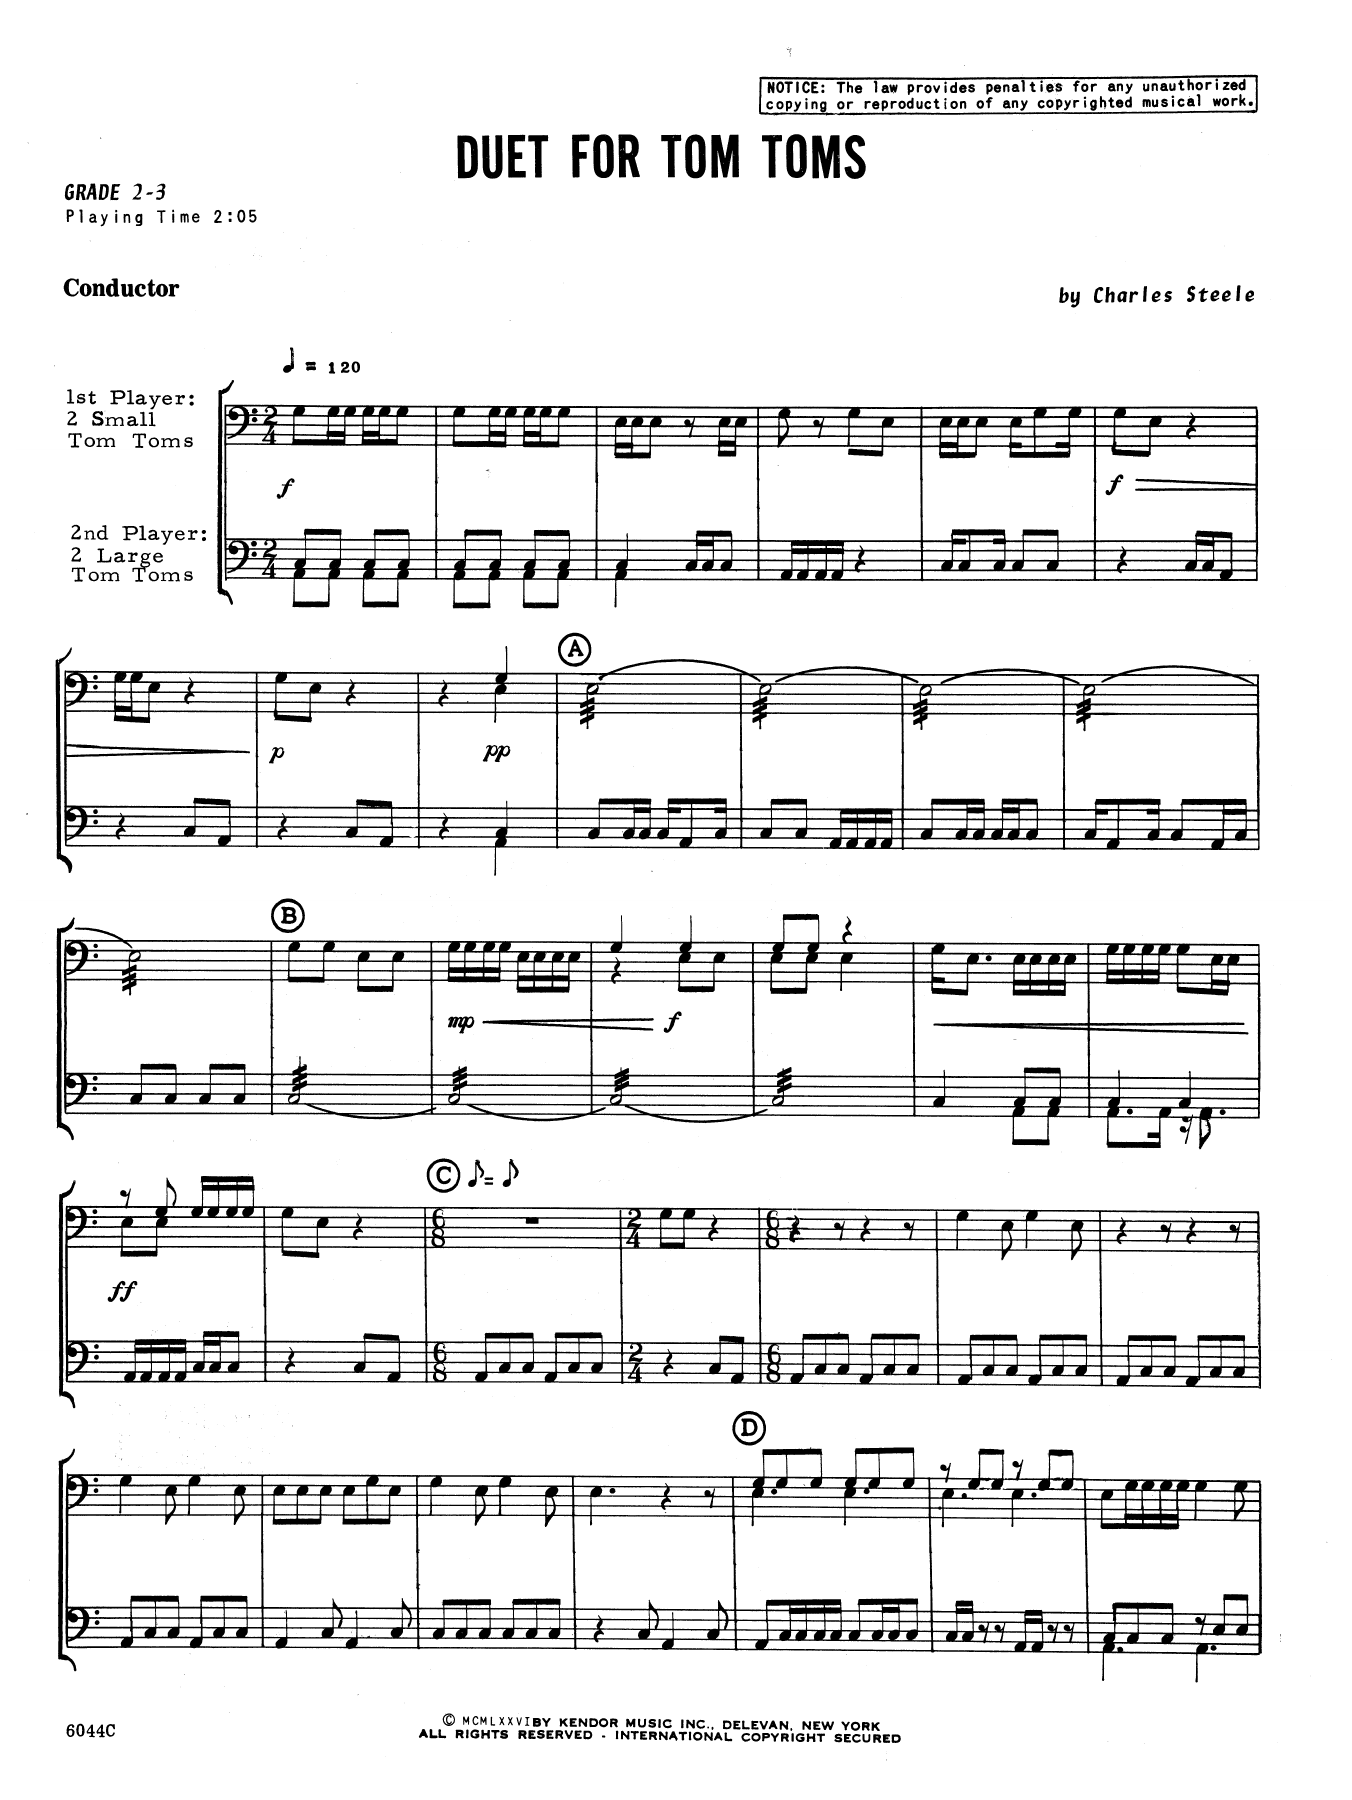 Duet For Tom Toms (COMPLETE) sheet music for percussions by Charles Steele. Score Image Preview.